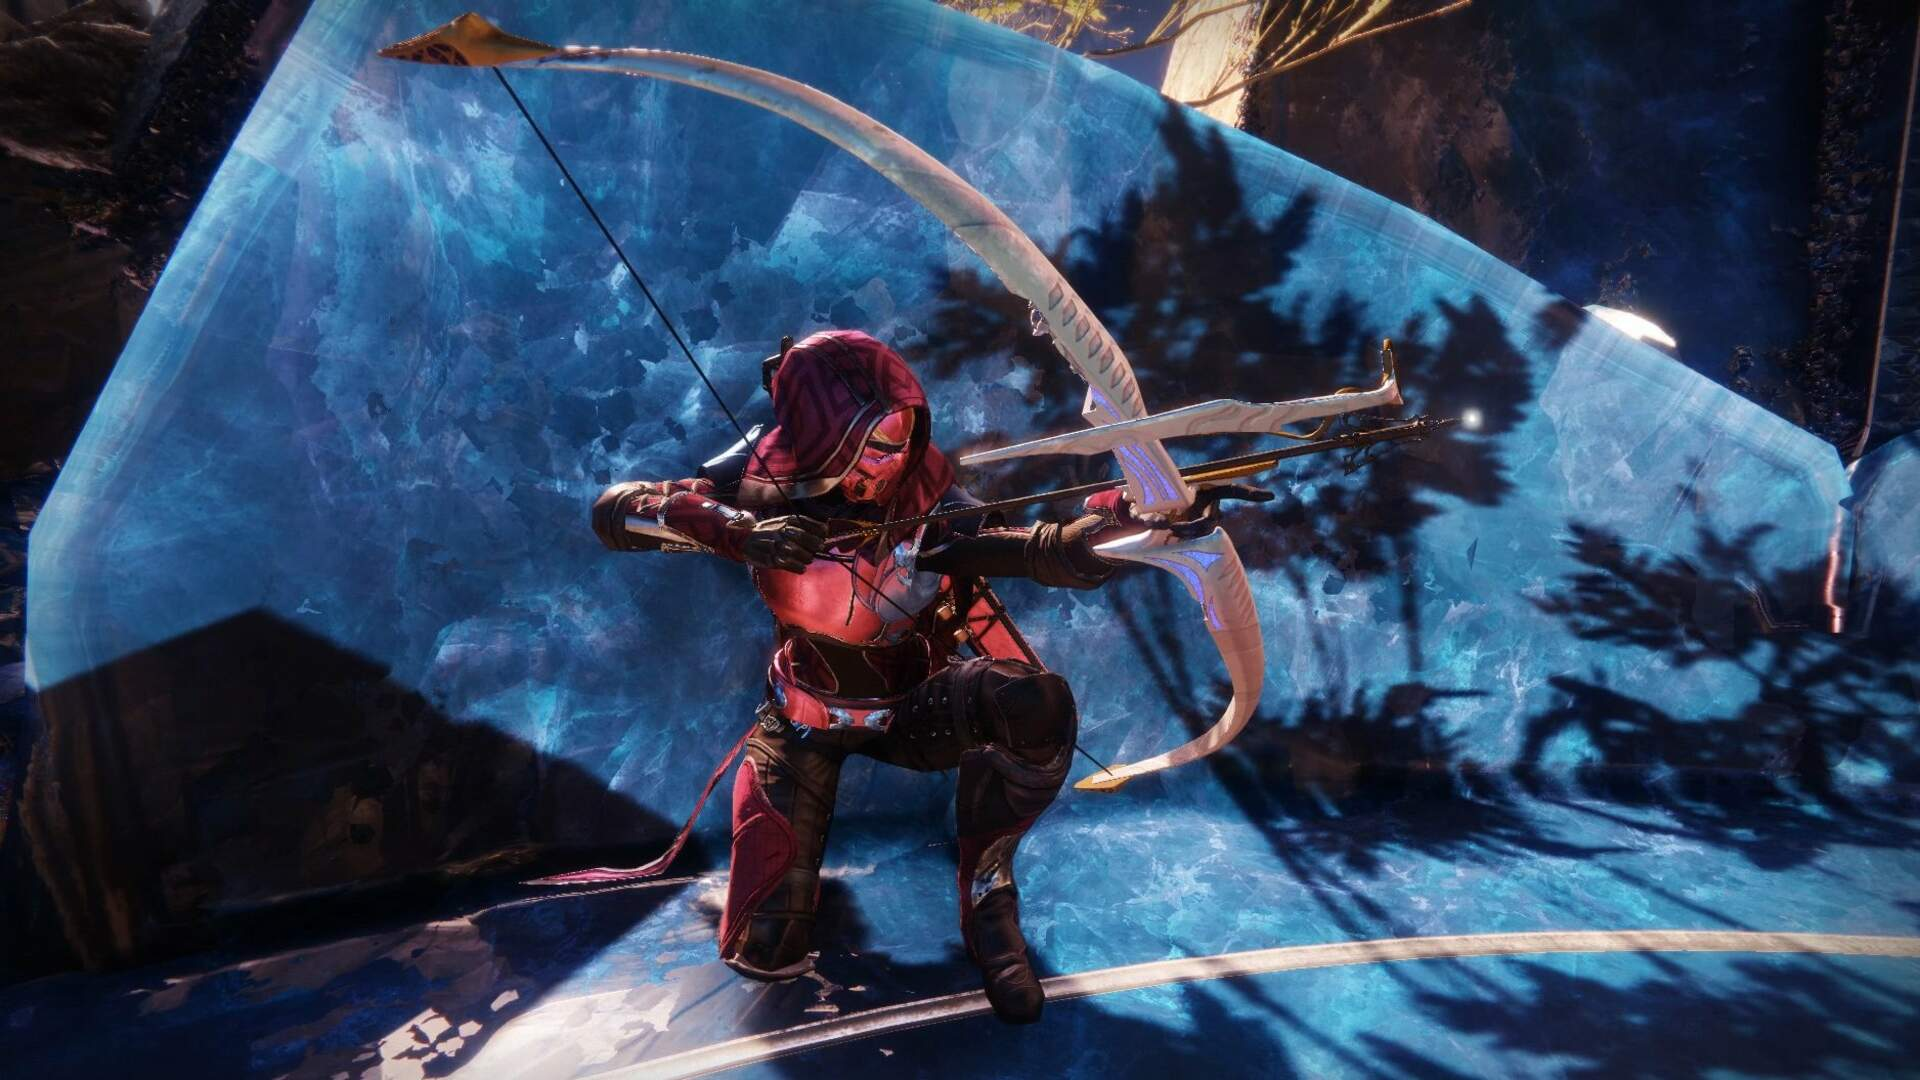 Destiny 2's Absurdly Powerful Bow Got Nerfed, But Now it's Broken in Another Way